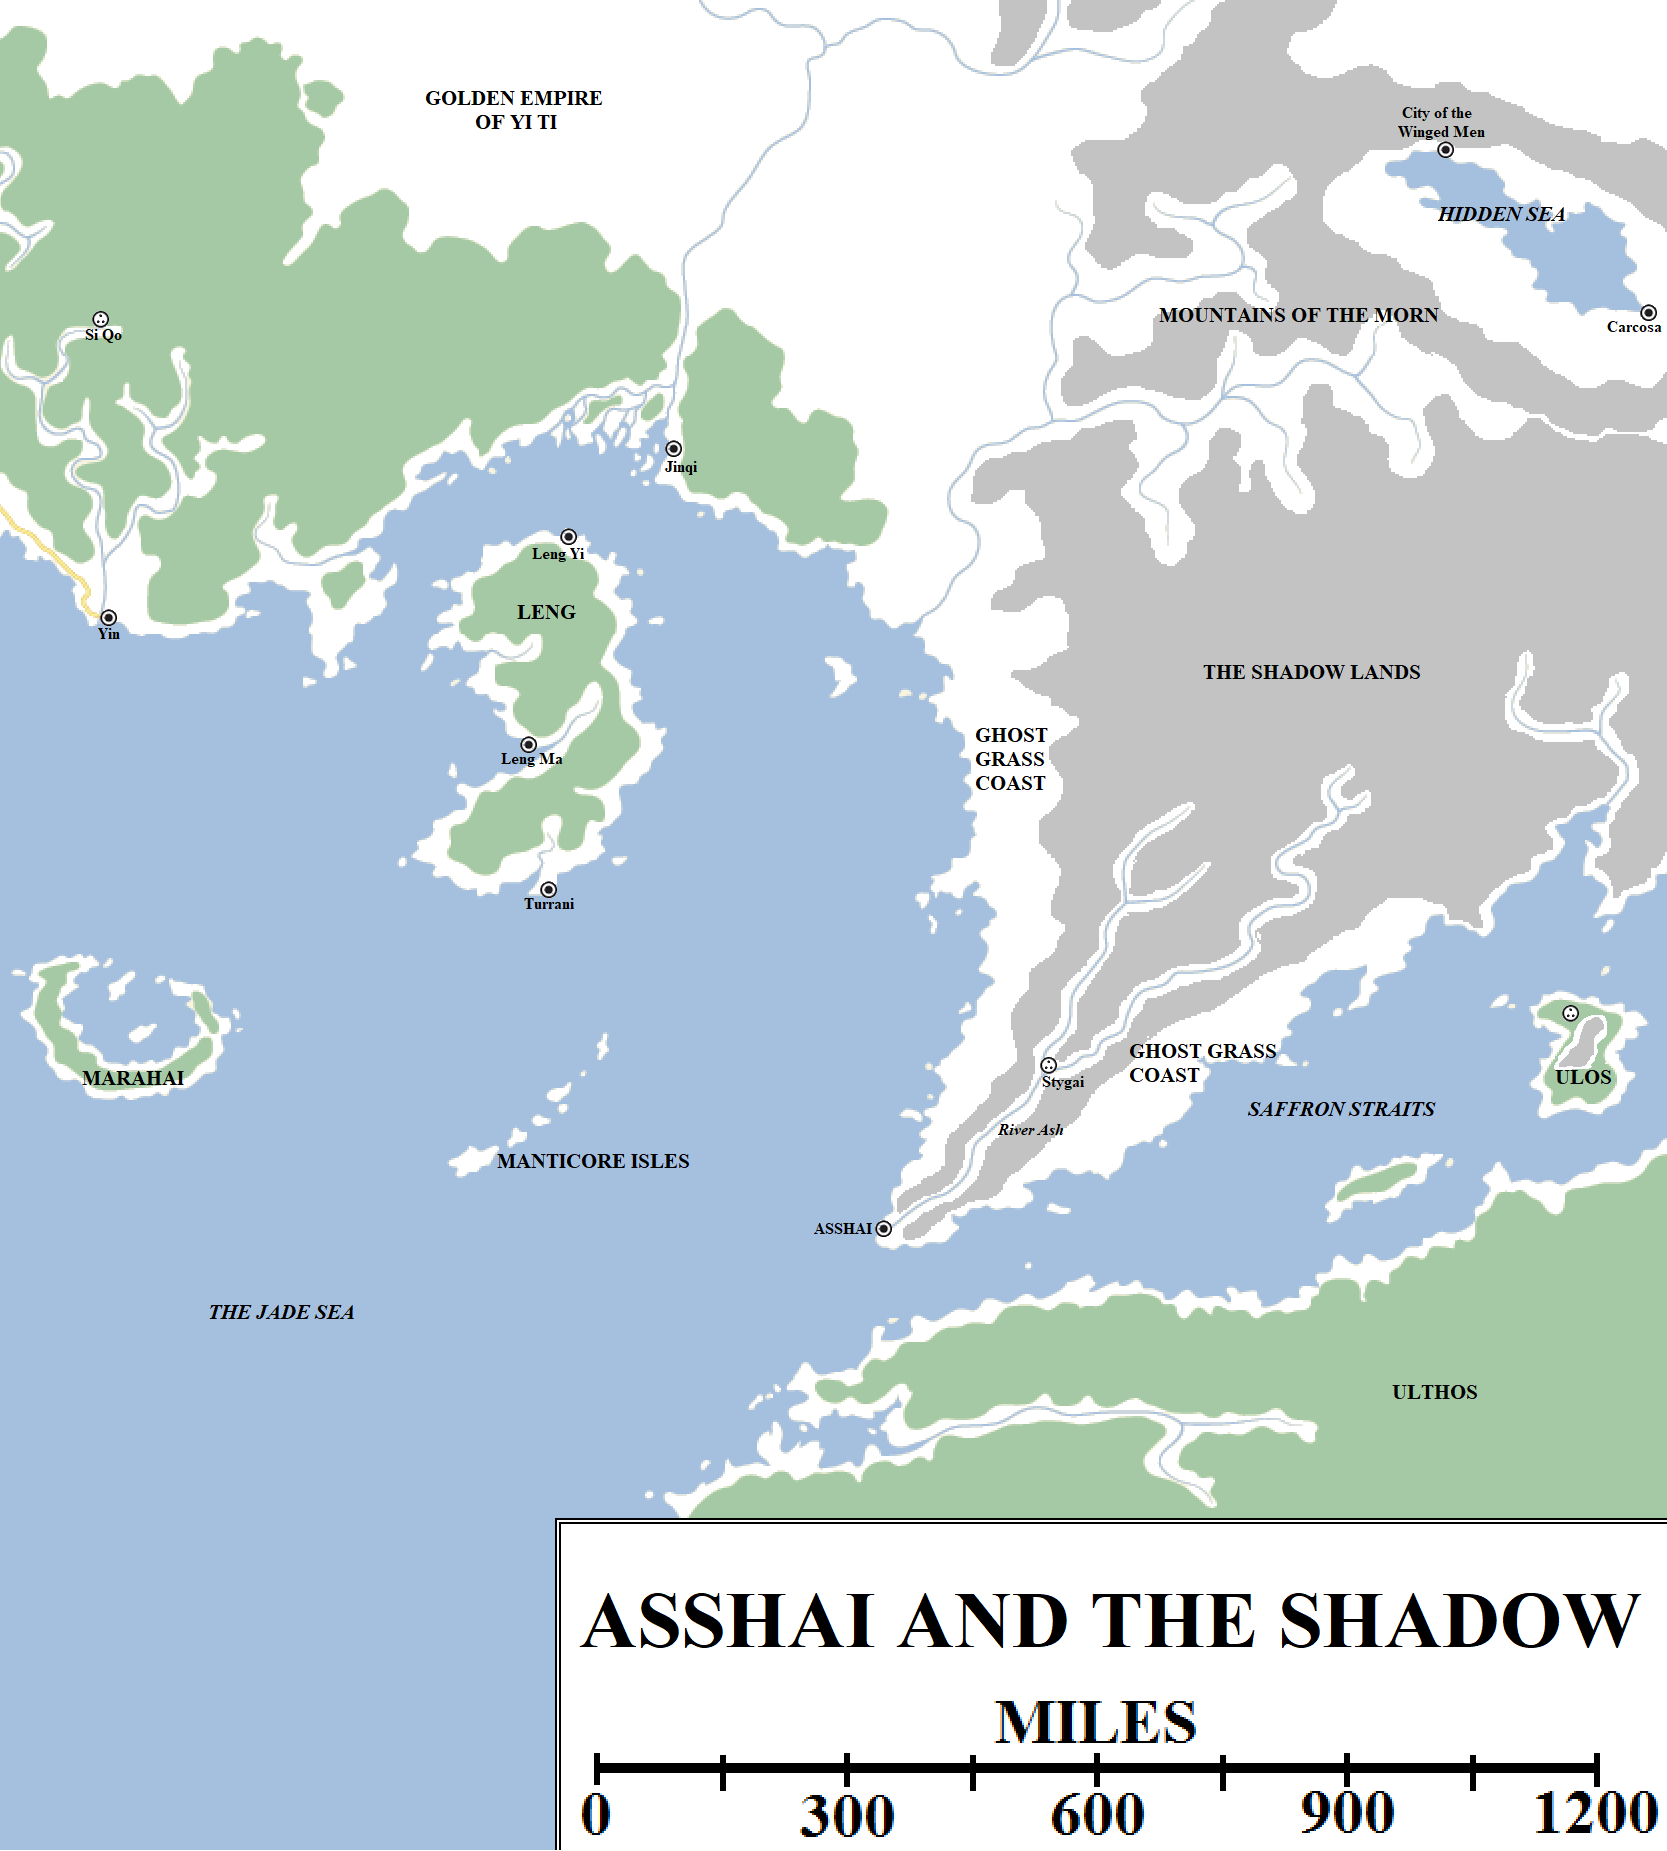 Map Of Asshai The Shadow Game Of Thrones In 2019 Imaginary